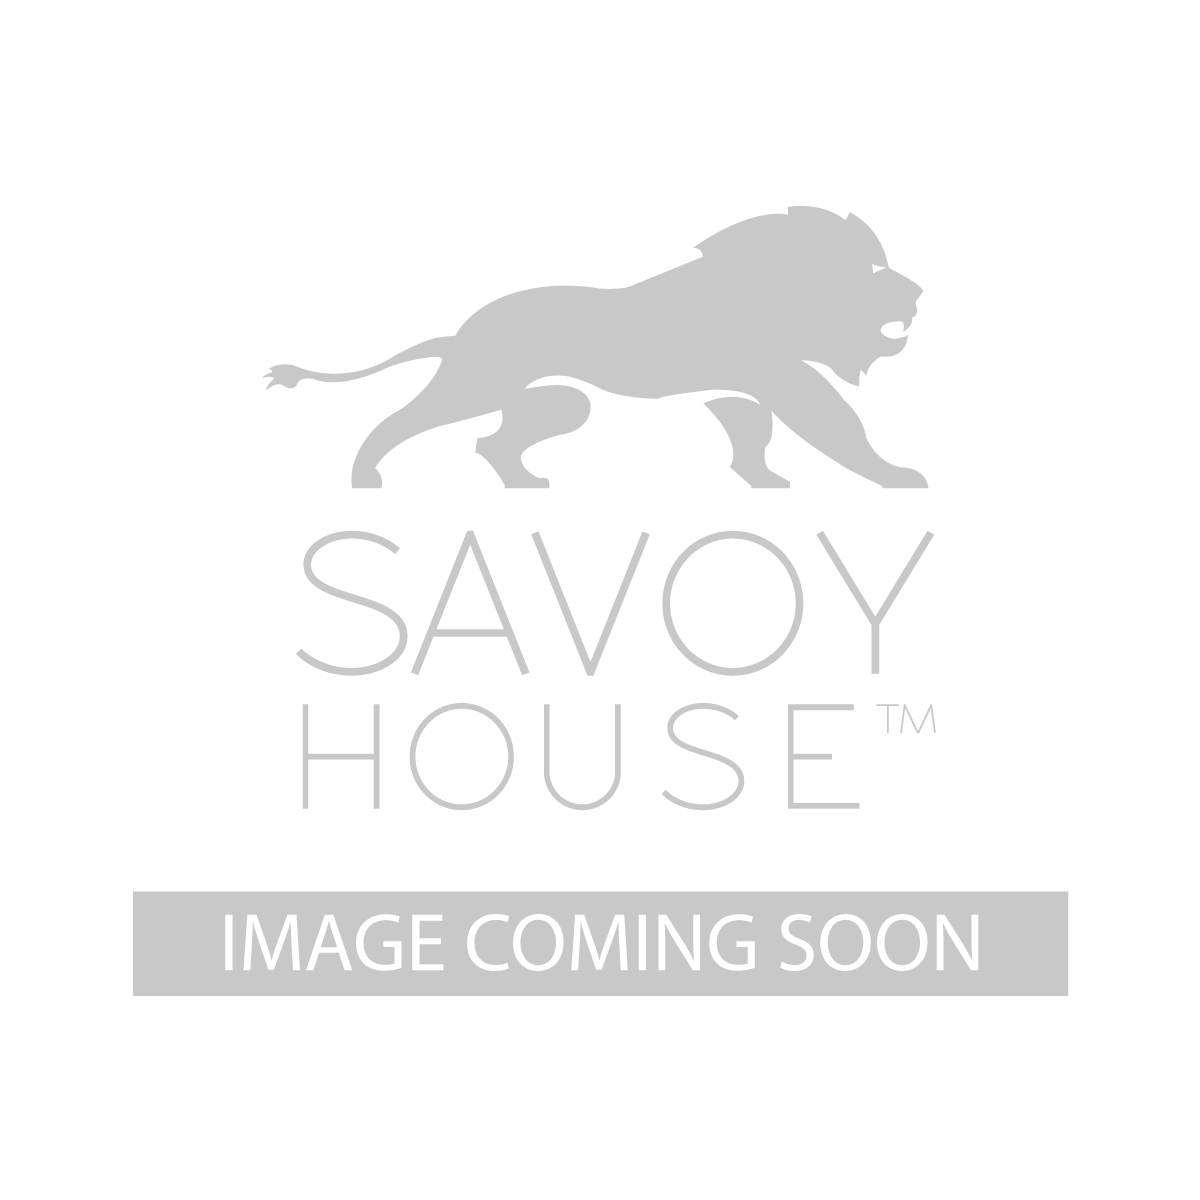 1 9030 4 82 Piper 4 Light Chandelier By Savoy House